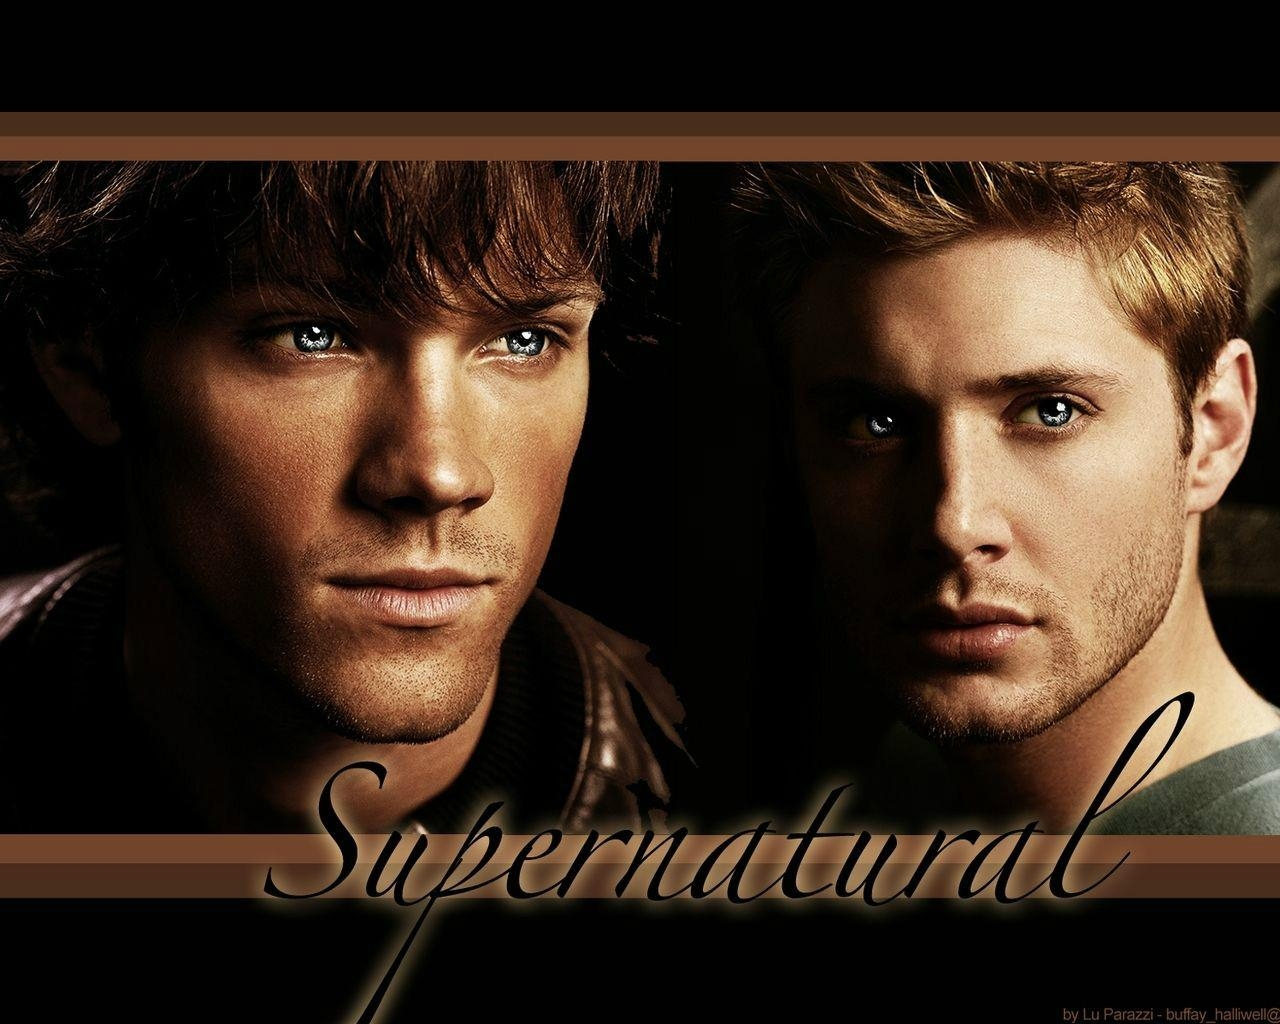 High Quality Supernatural Wall Art Promotion Shop For High Quality With Supernatural Wall Art (View 20 of 20)